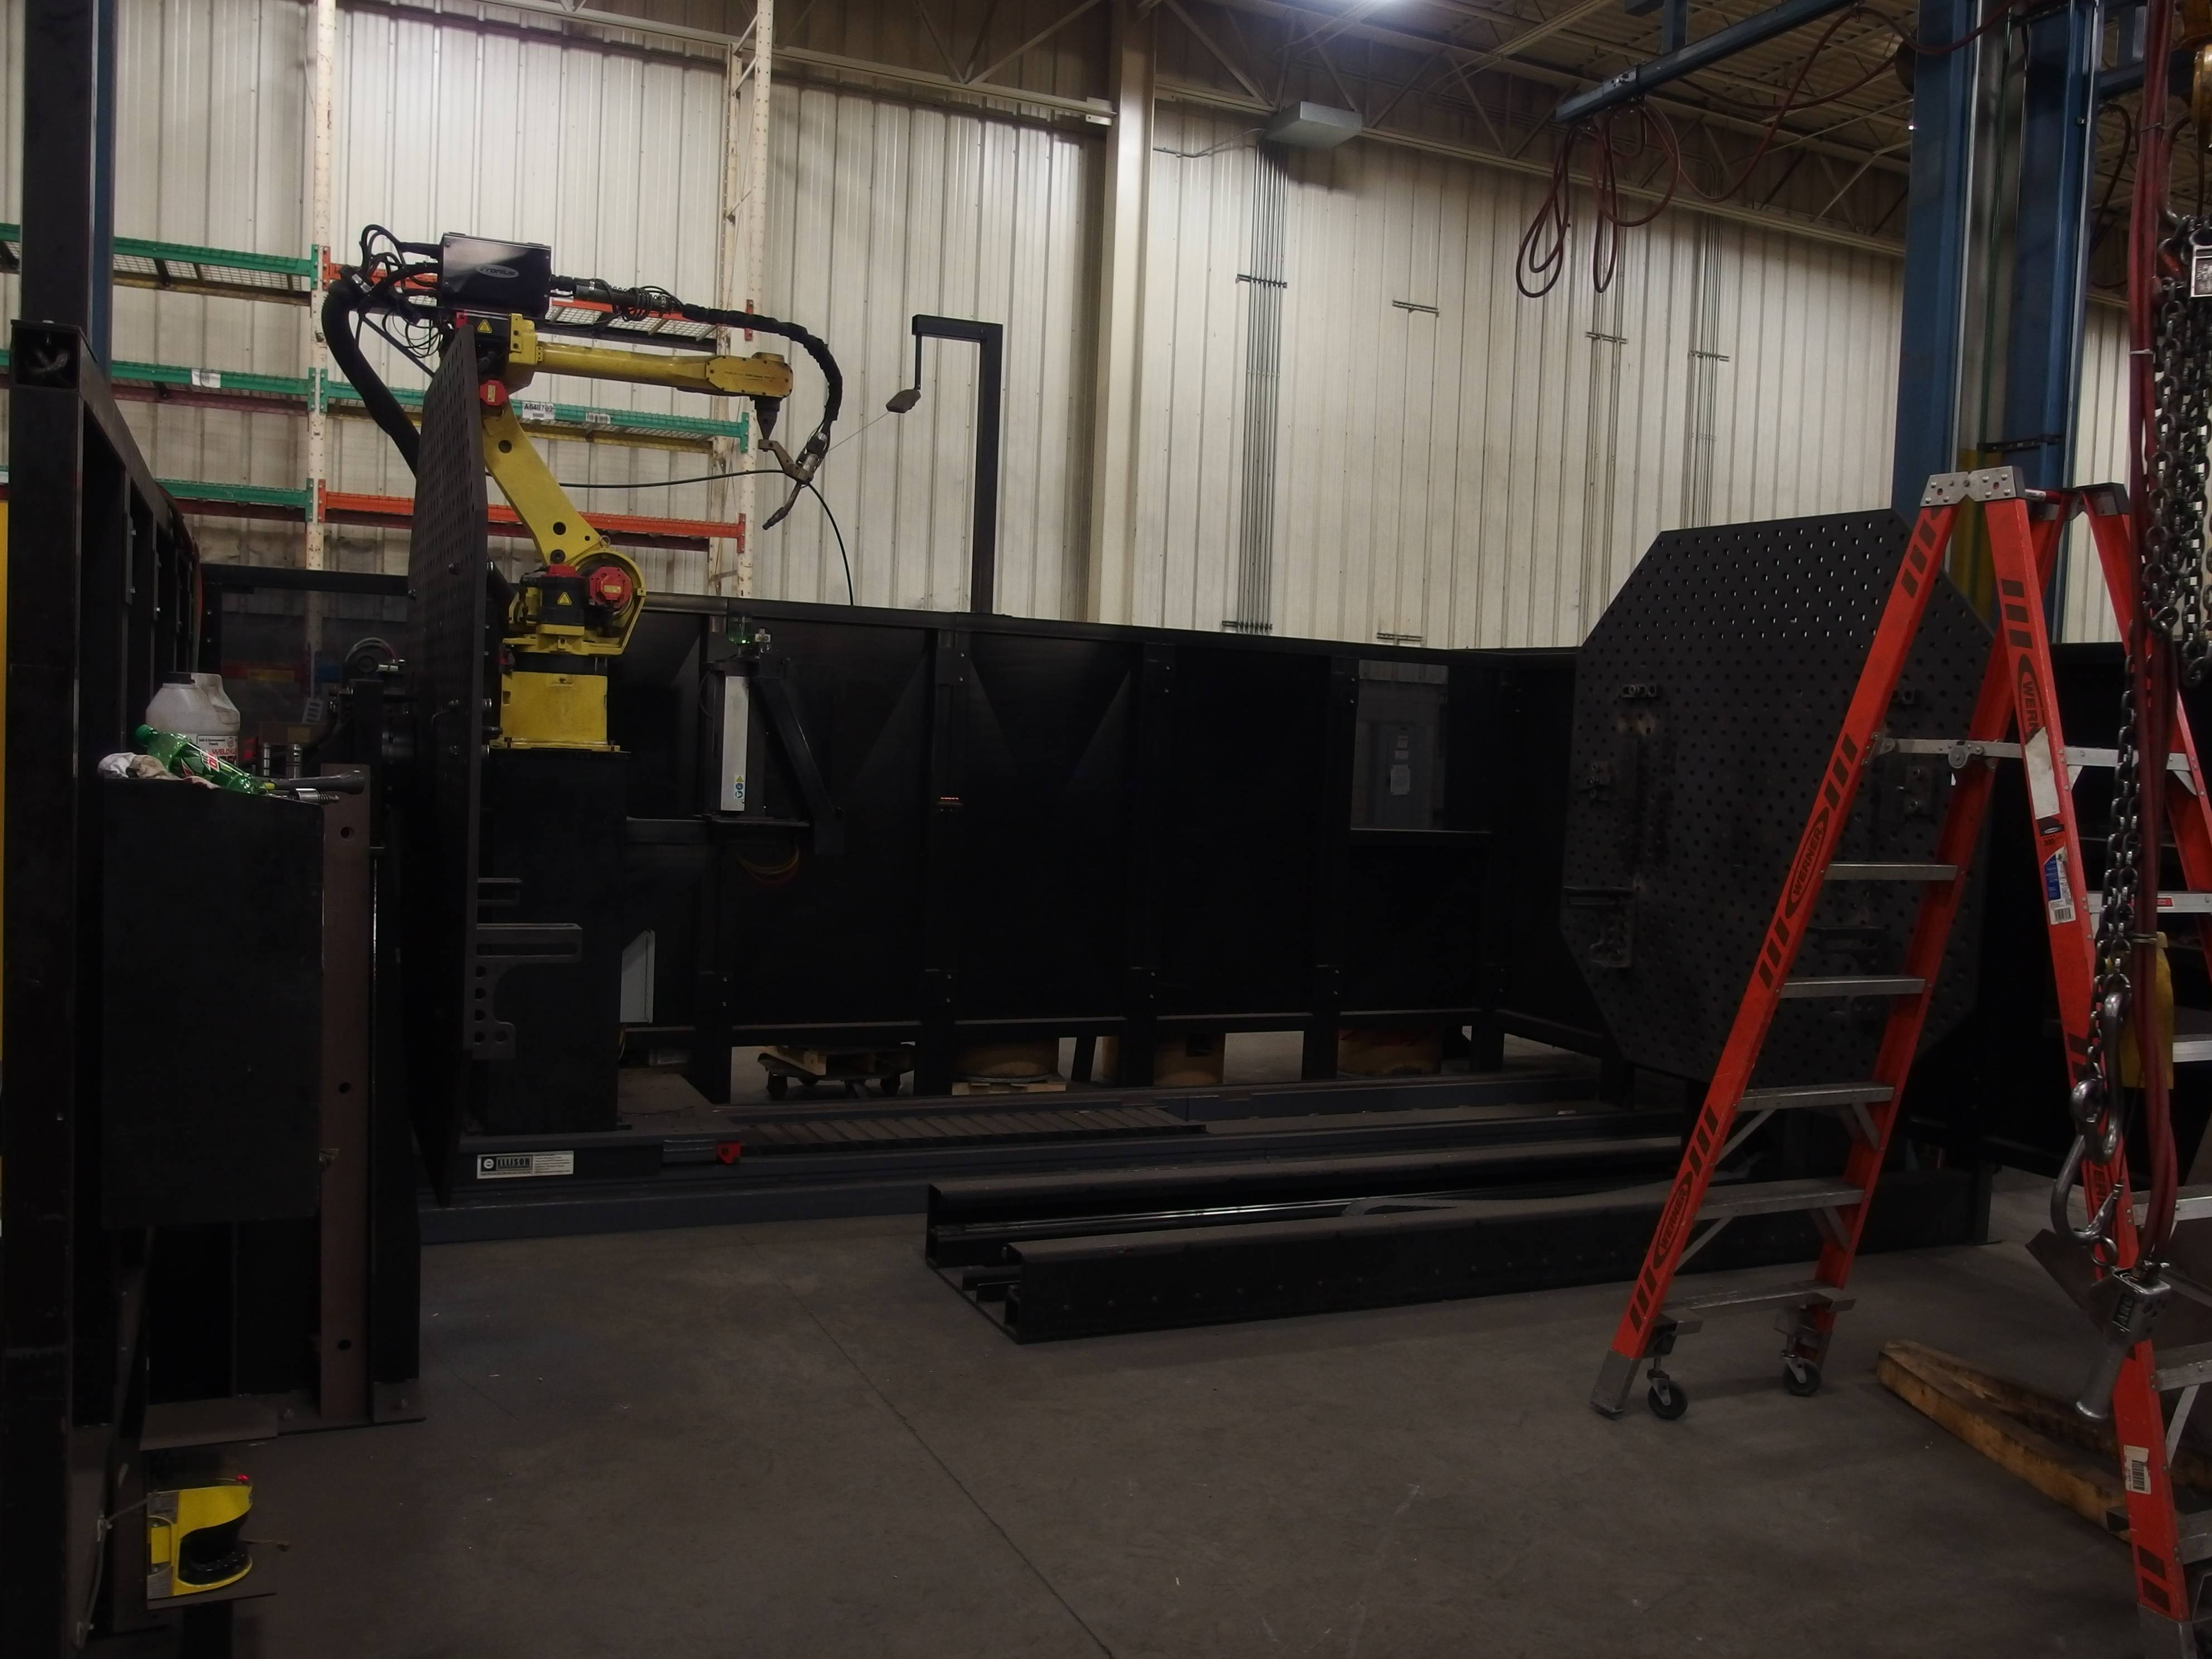 Fanuc ArcMate 120iB-10L Robotic Welding Station with Fronius TPS 5000 MIG Welder and Enclosure